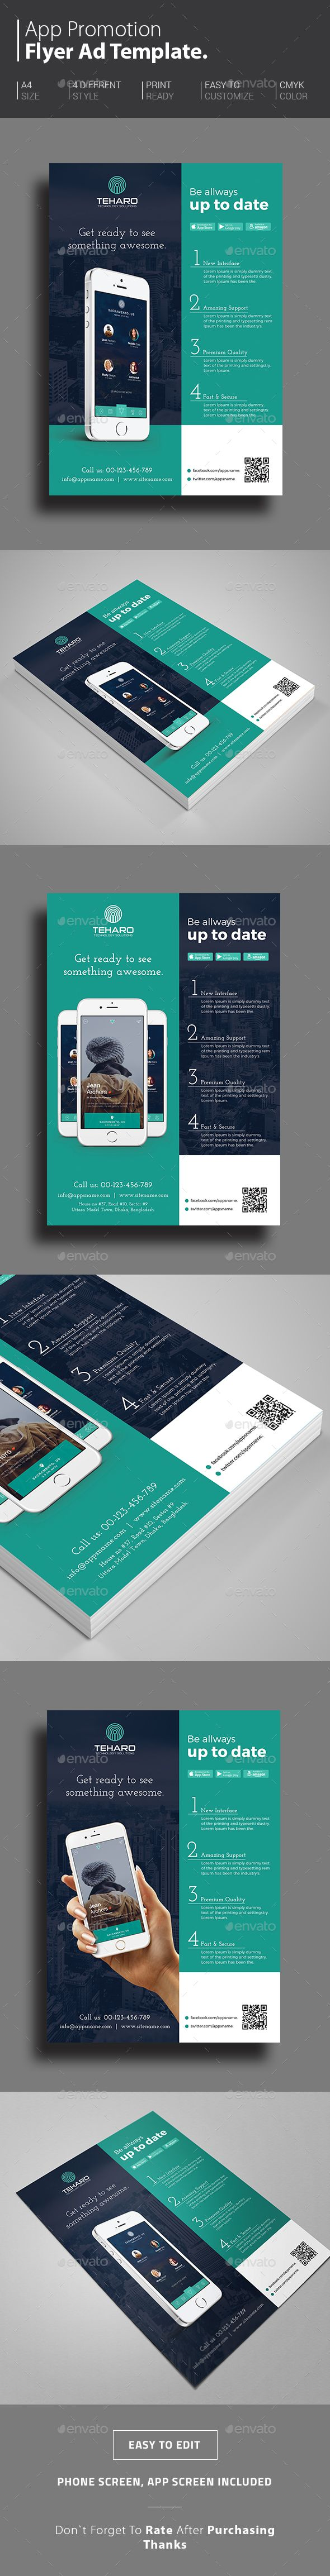 App Promotional Flyer Template PSD. Download here http